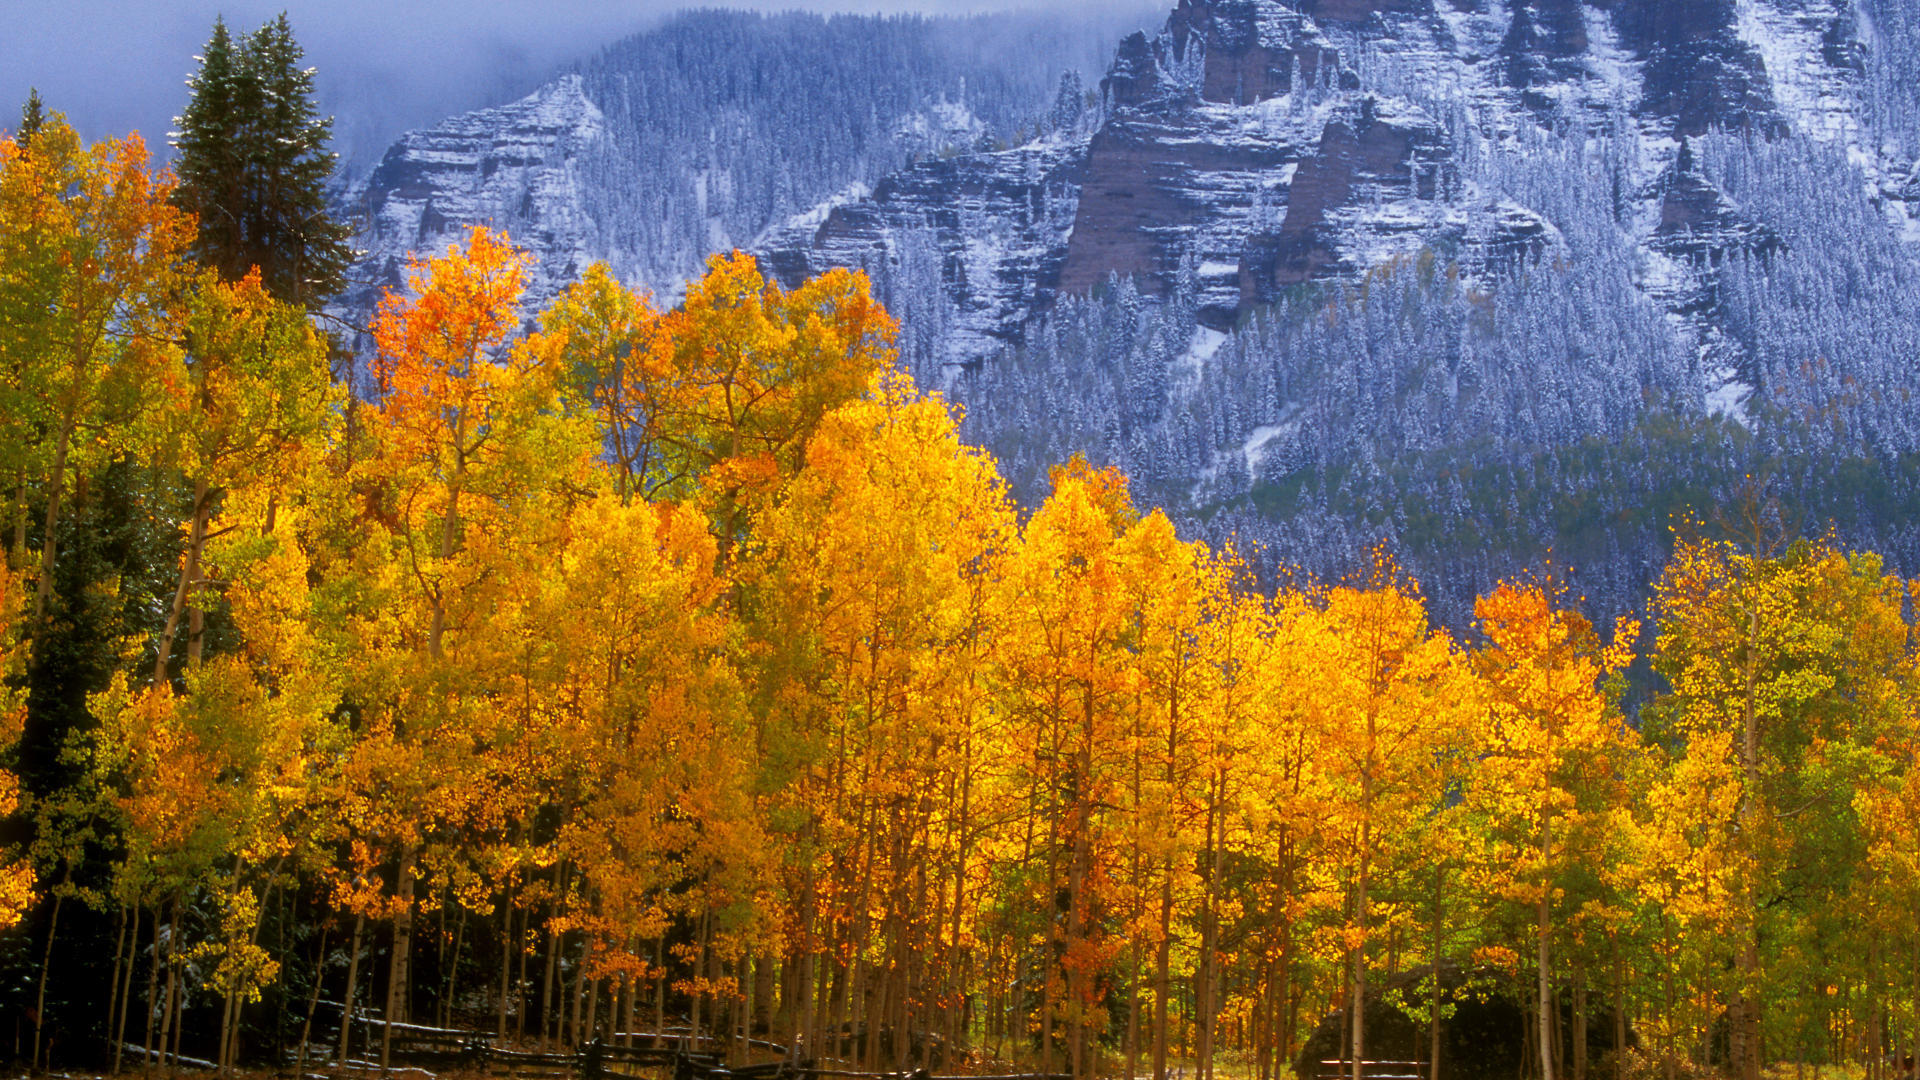 3d Fall Desktop Wallpaper Colorado Wallpaper Hd Desktop Wallpapers 4k Hd